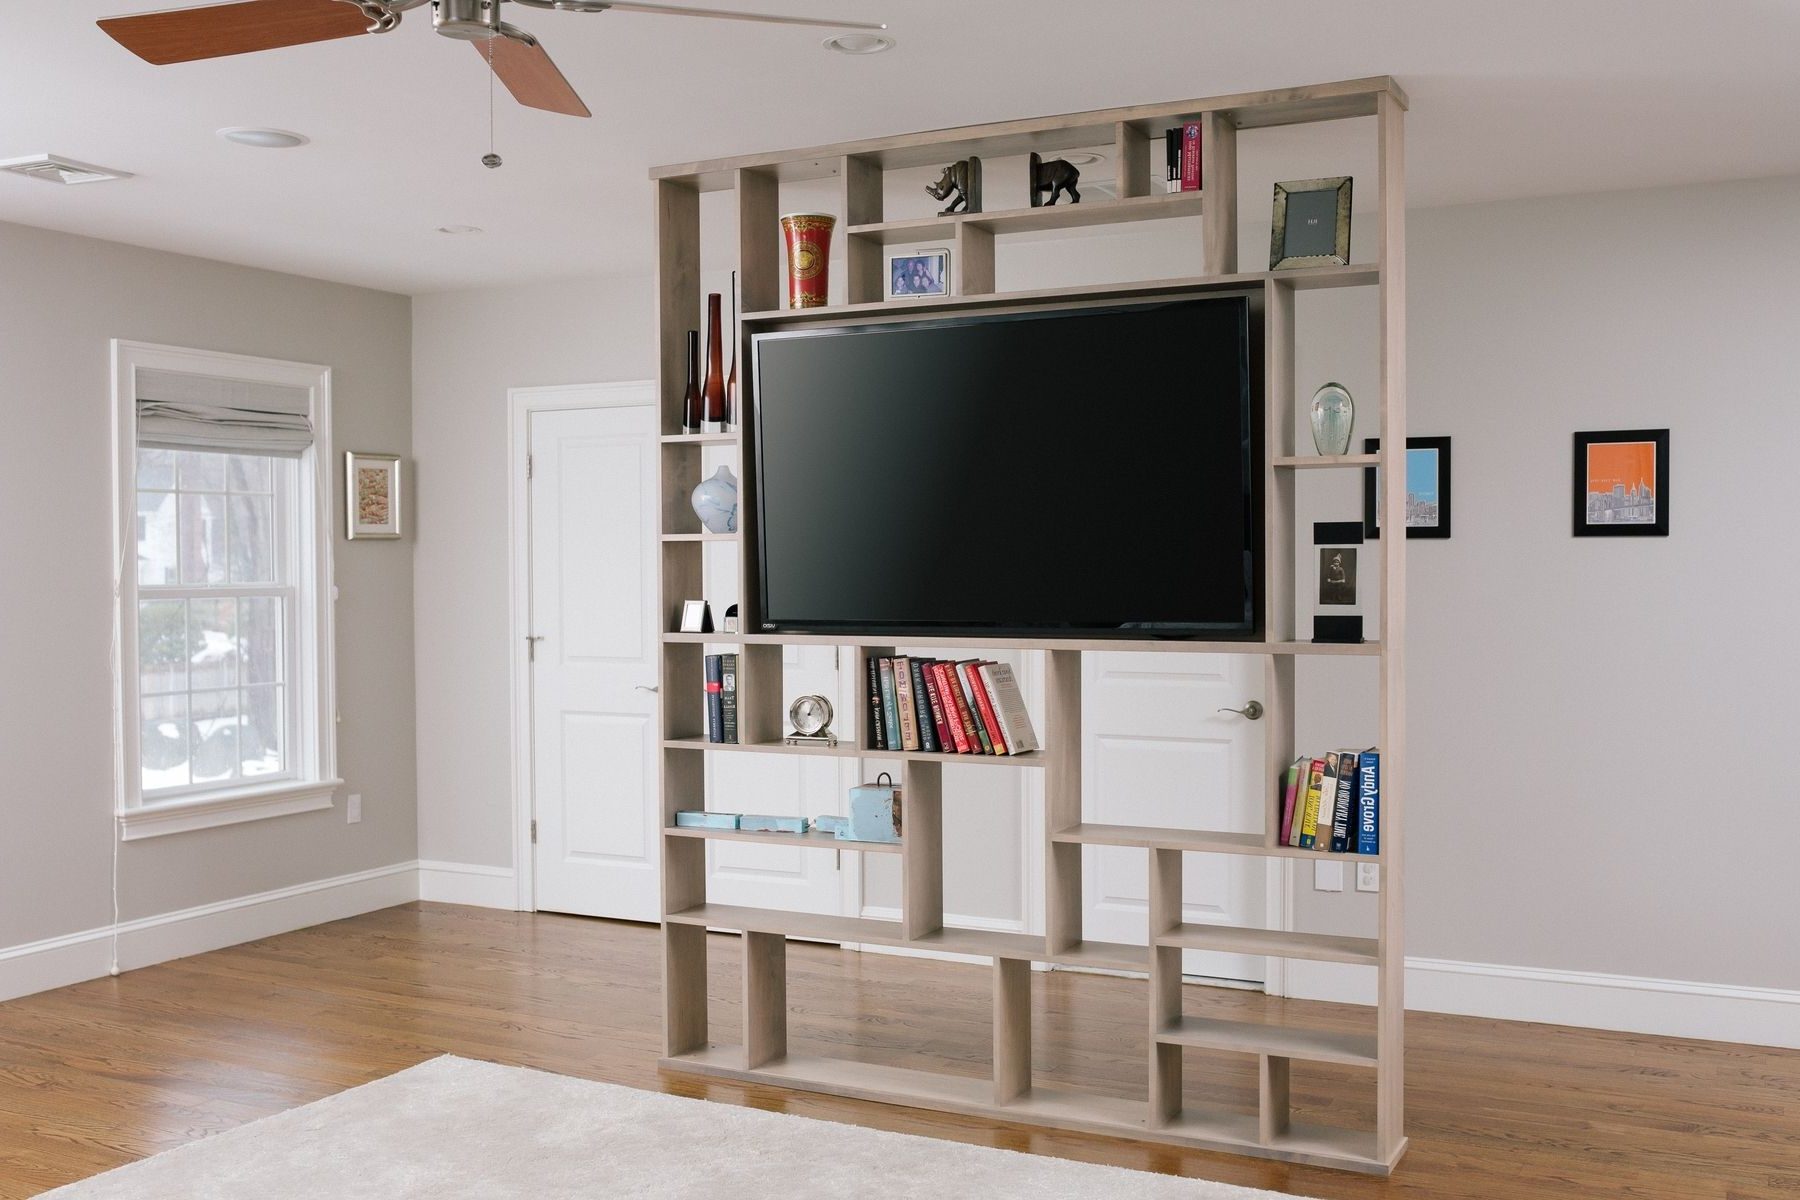 Hand Crafted Lexington Room Divider / Bookshelf / Tv Standcorl Throughout Famous Tv Stands And Bookshelf (View 6 of 20)